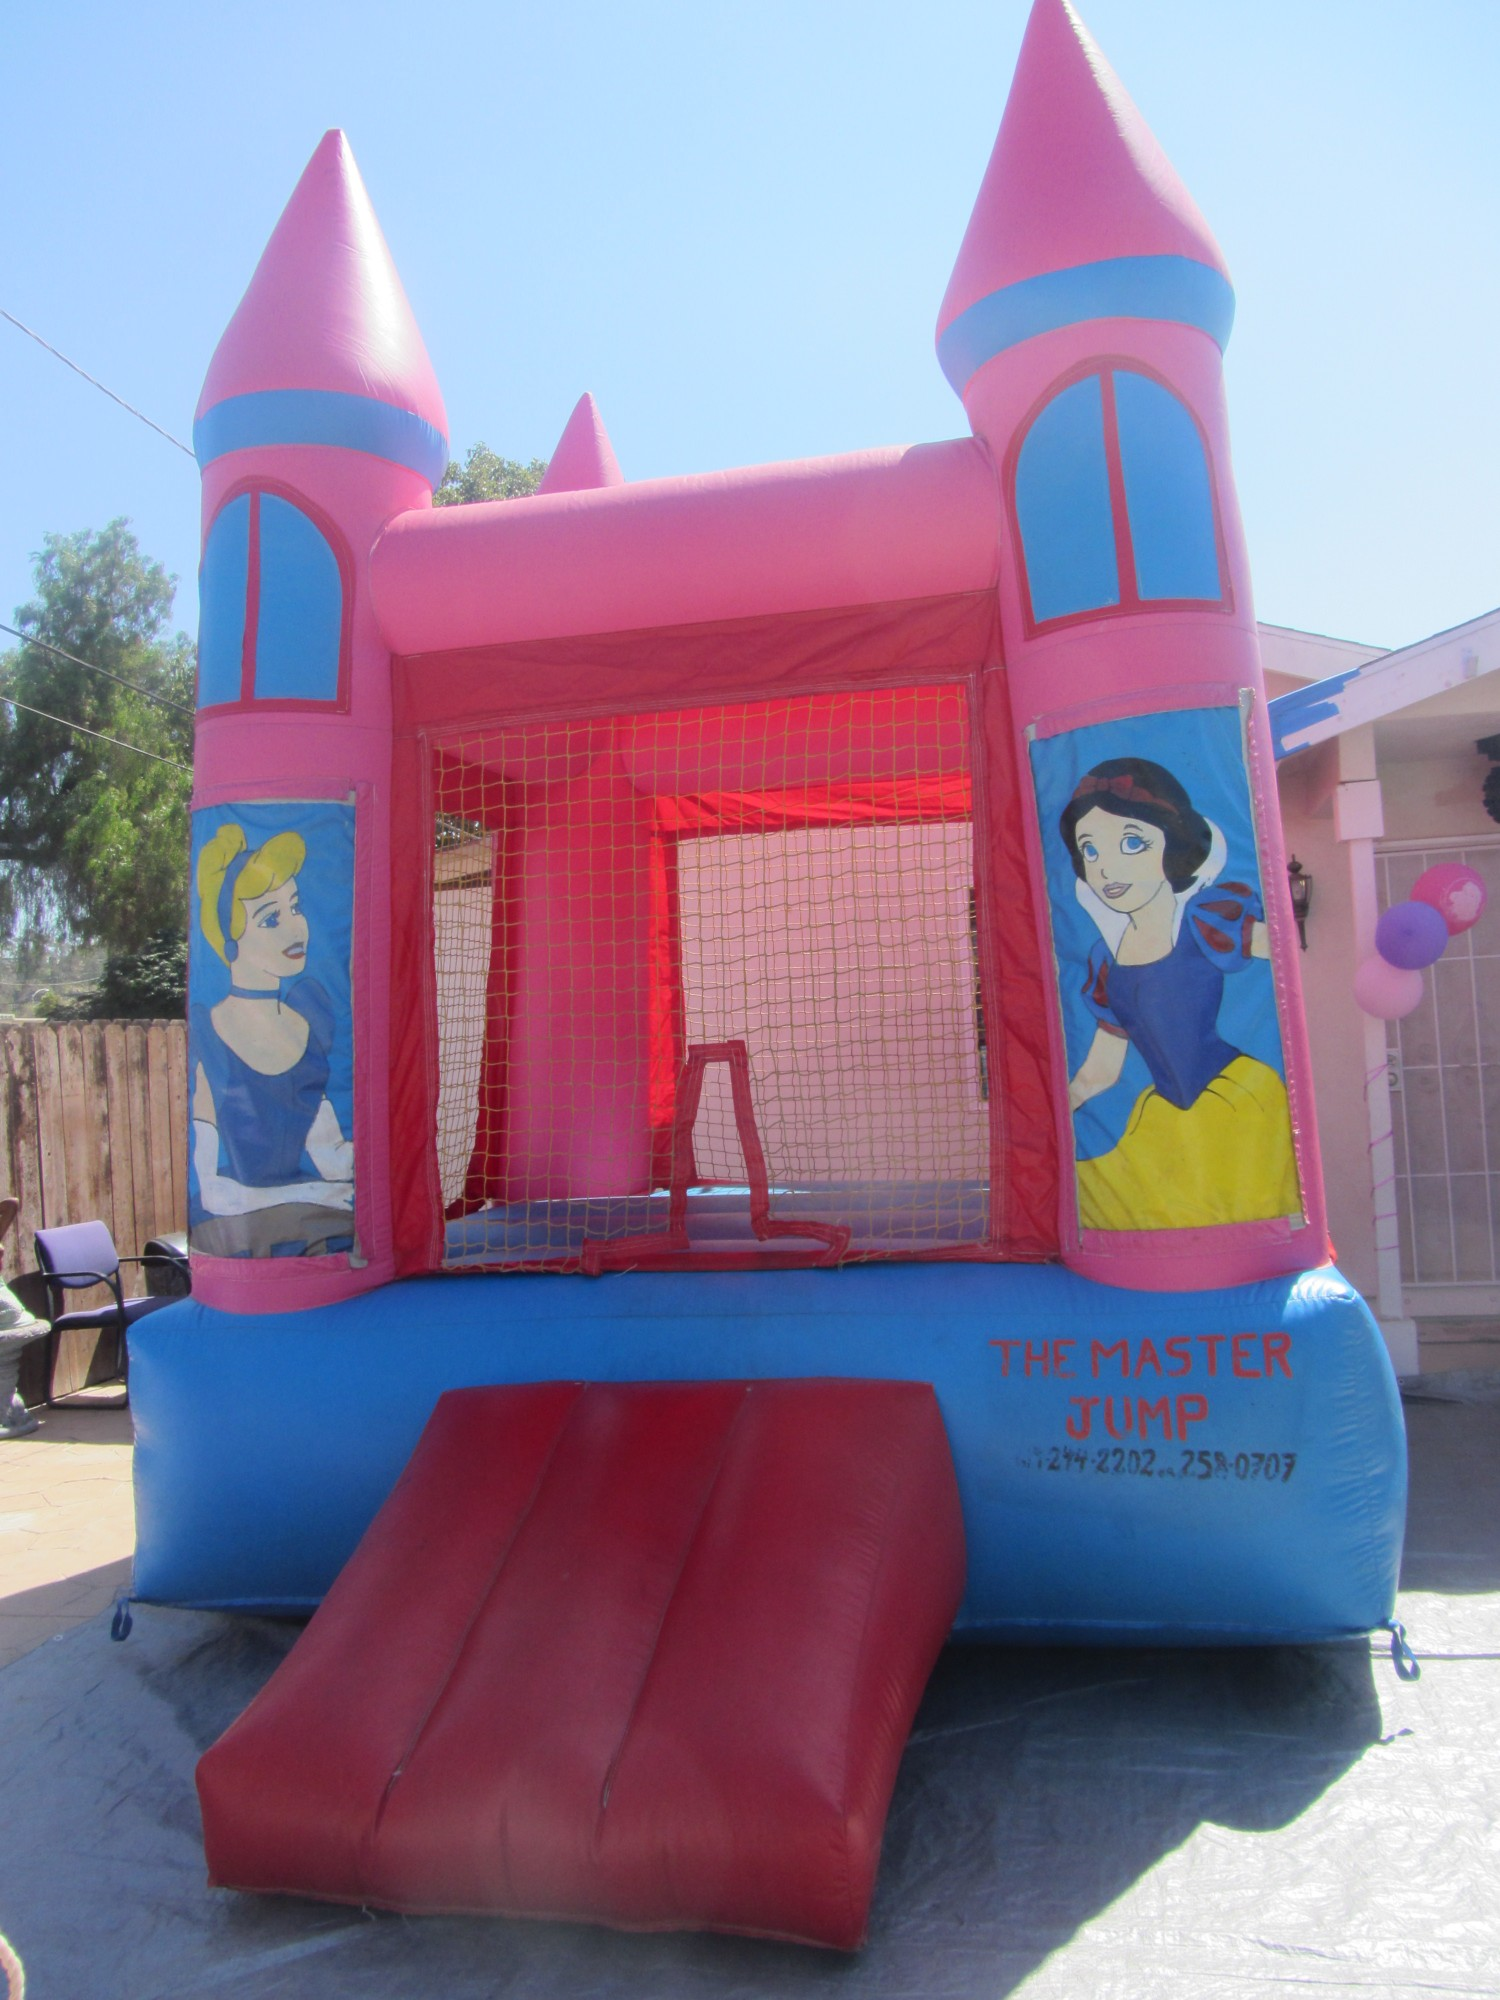 Disney Princesses Bounce House for Party Rental